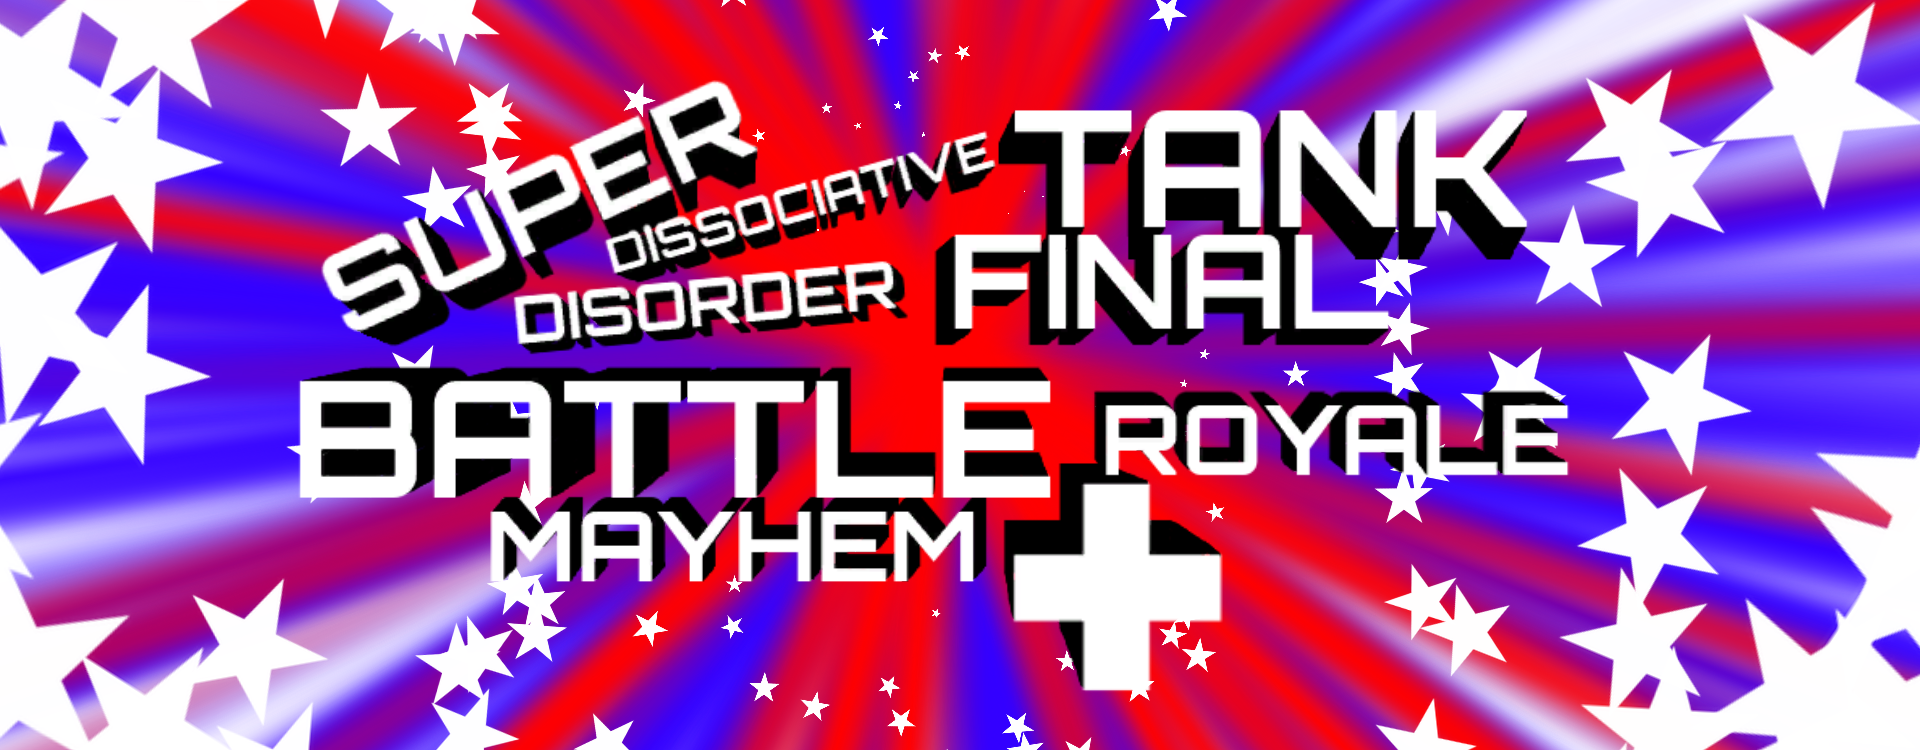 Super Dissociative Tank Disorder Final Battle Royale Mayhem+